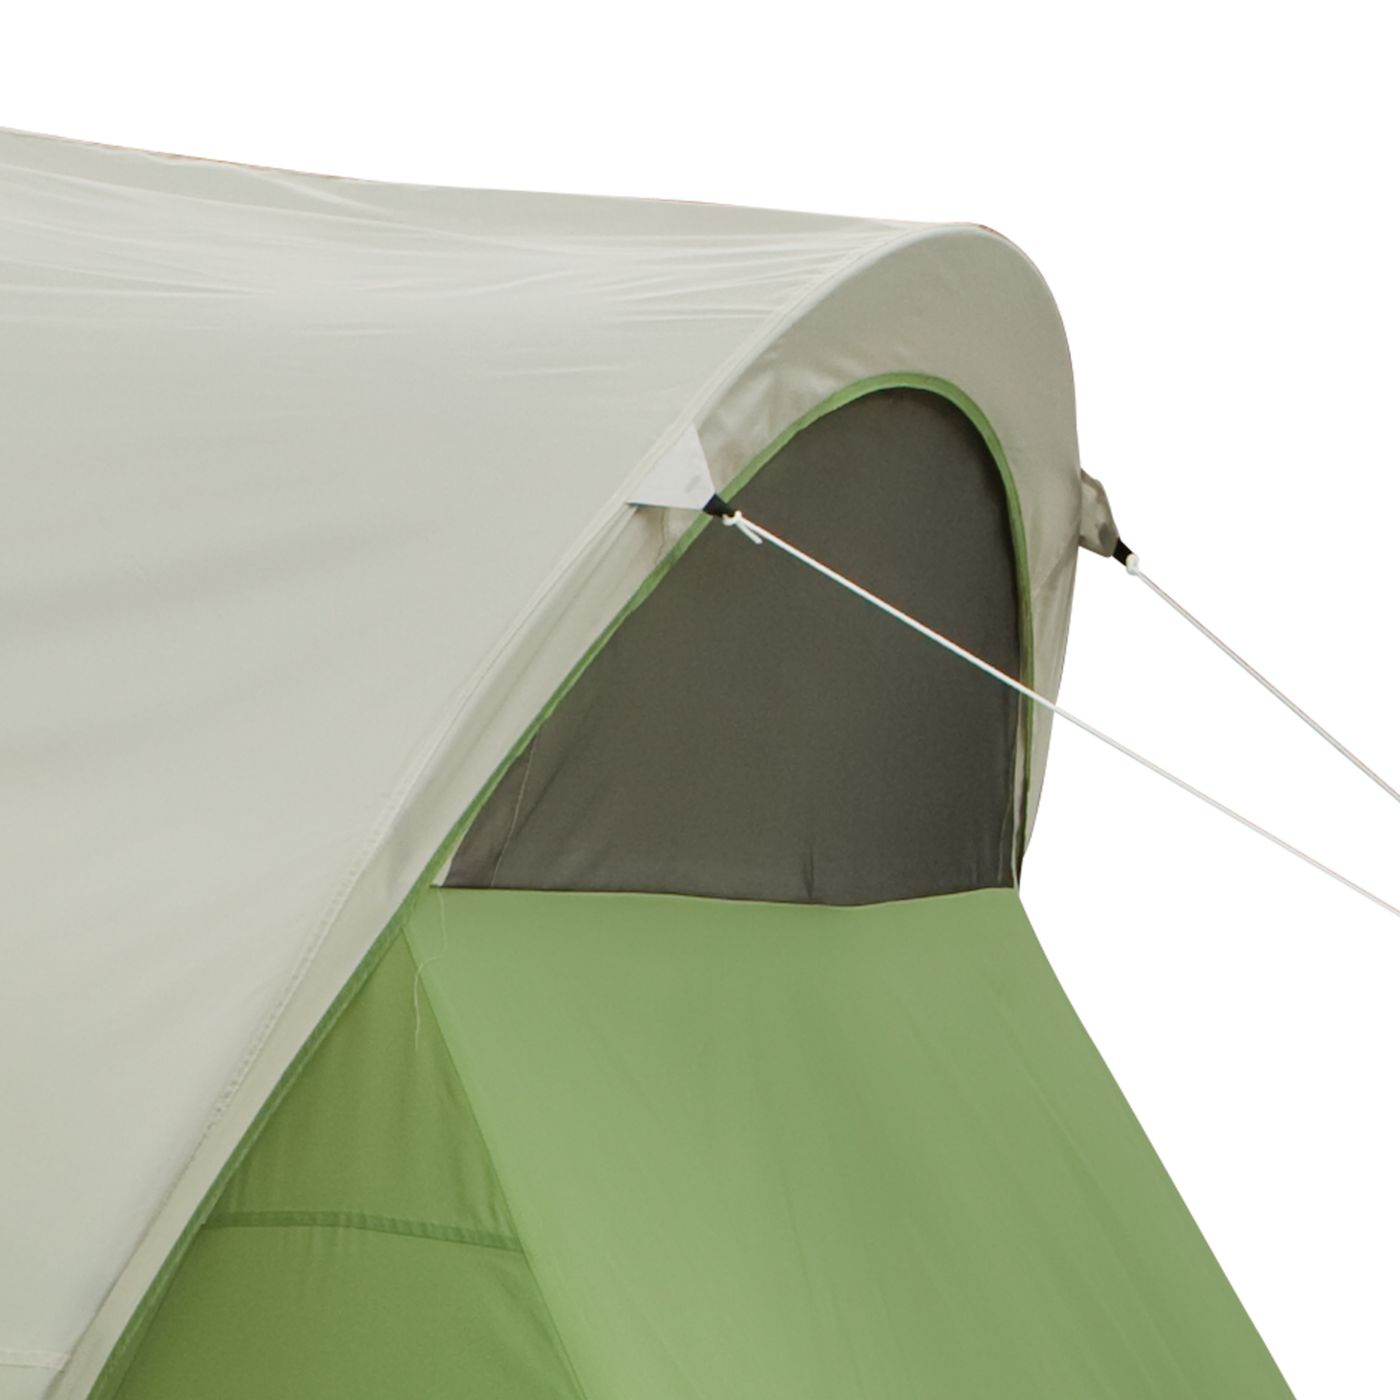 ... Montana™ 8-Person Tent ...  sc 1 st  Coleman & Montana™ 8-Person Tent - USA